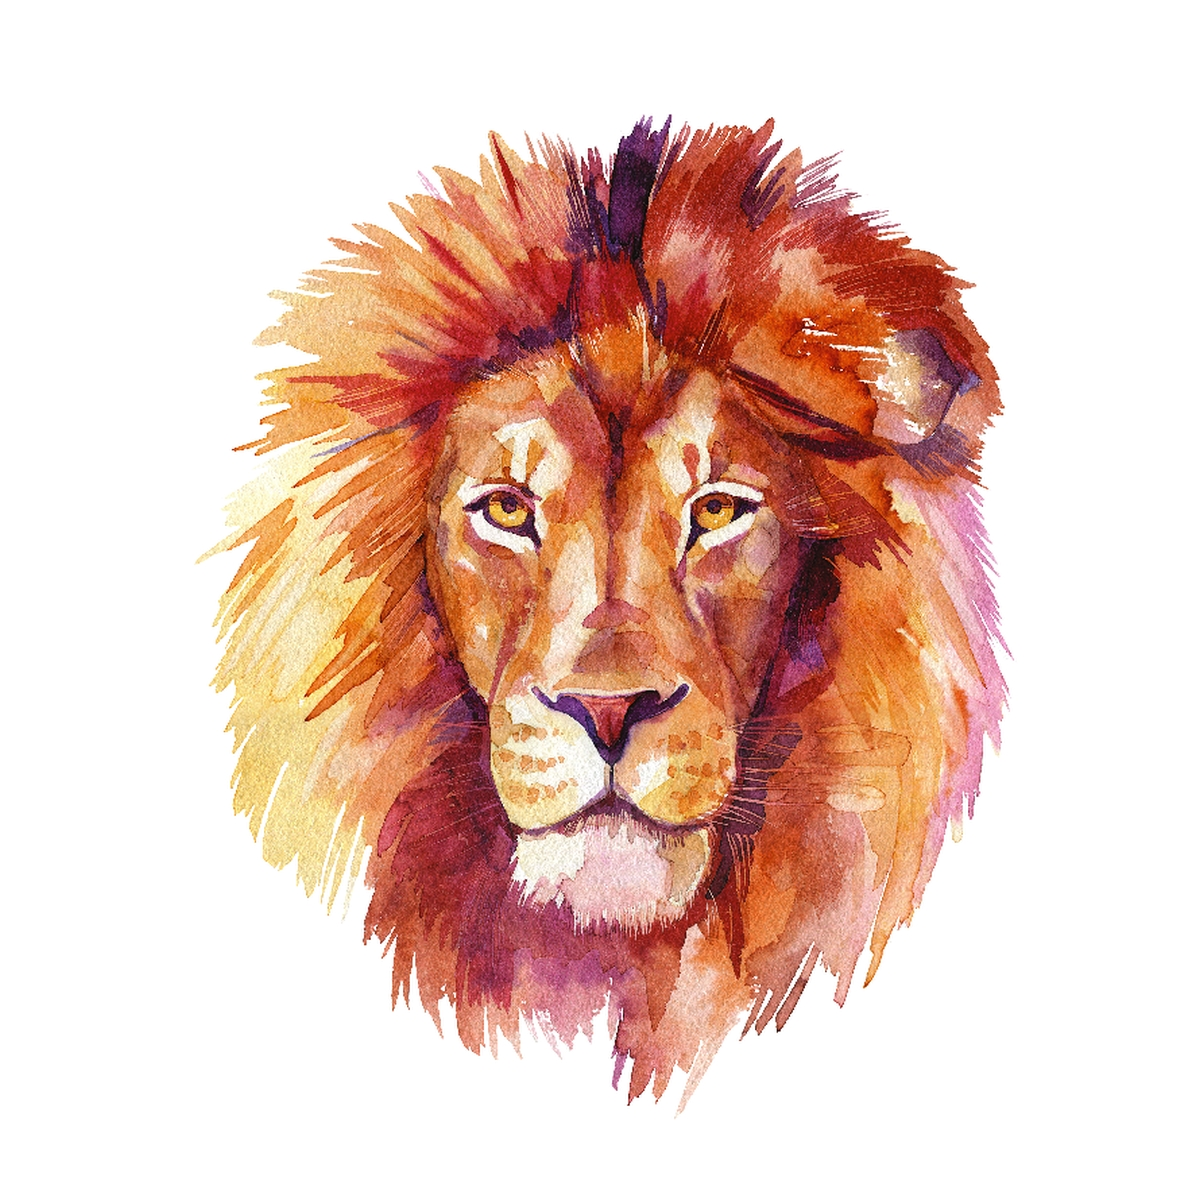 Lion Home Wall Shelf Decor Animal Decorations Watercolor Square Sign - 9x9